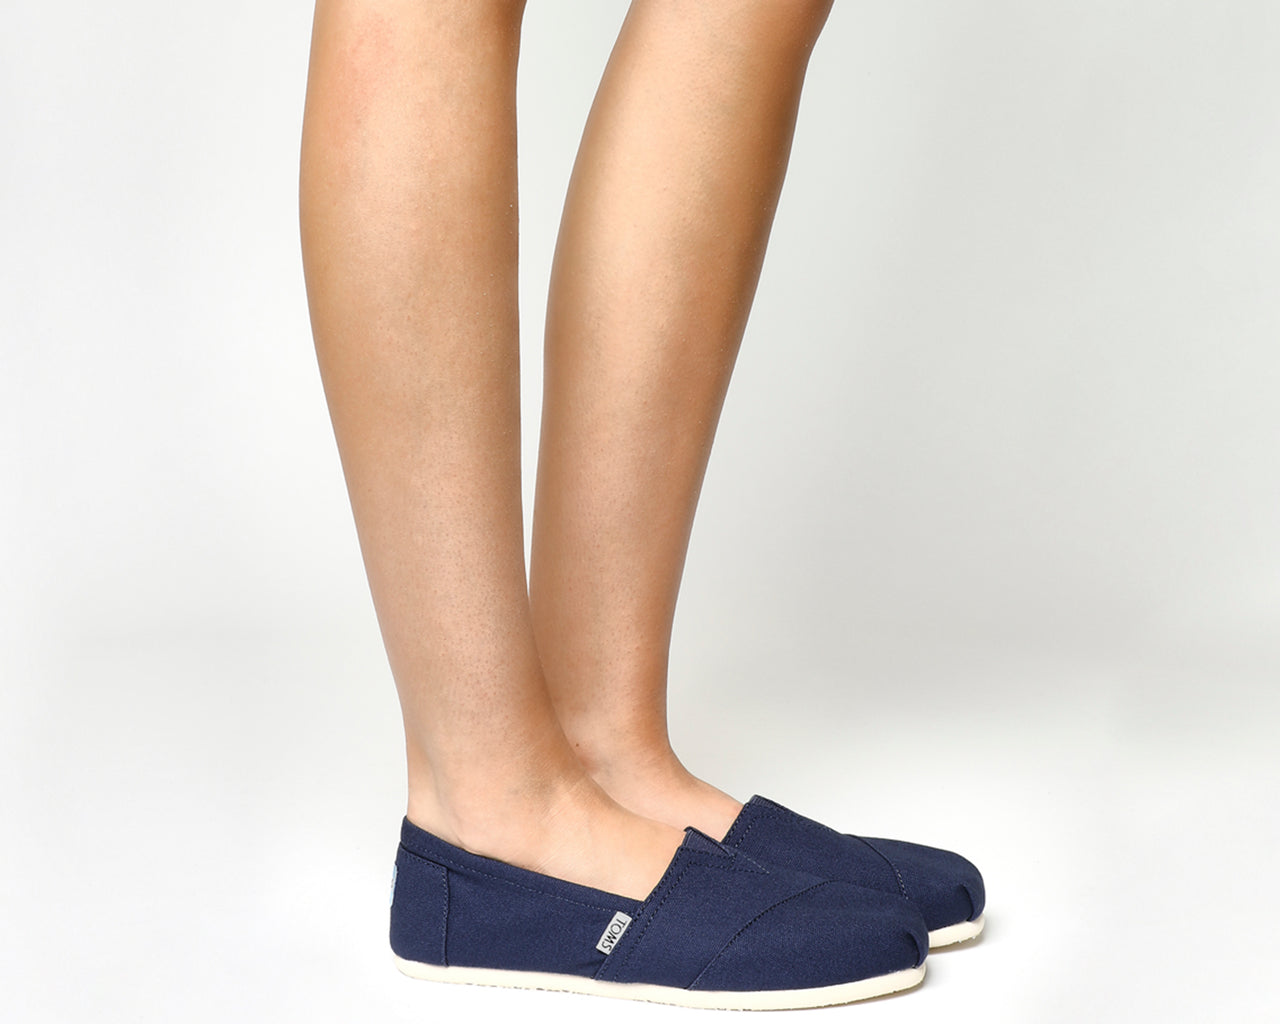 c17fe4d62b7 Womens Toms Classic Slip Ons Navy Canvas – OFFCUTS SHOES by OFFICE